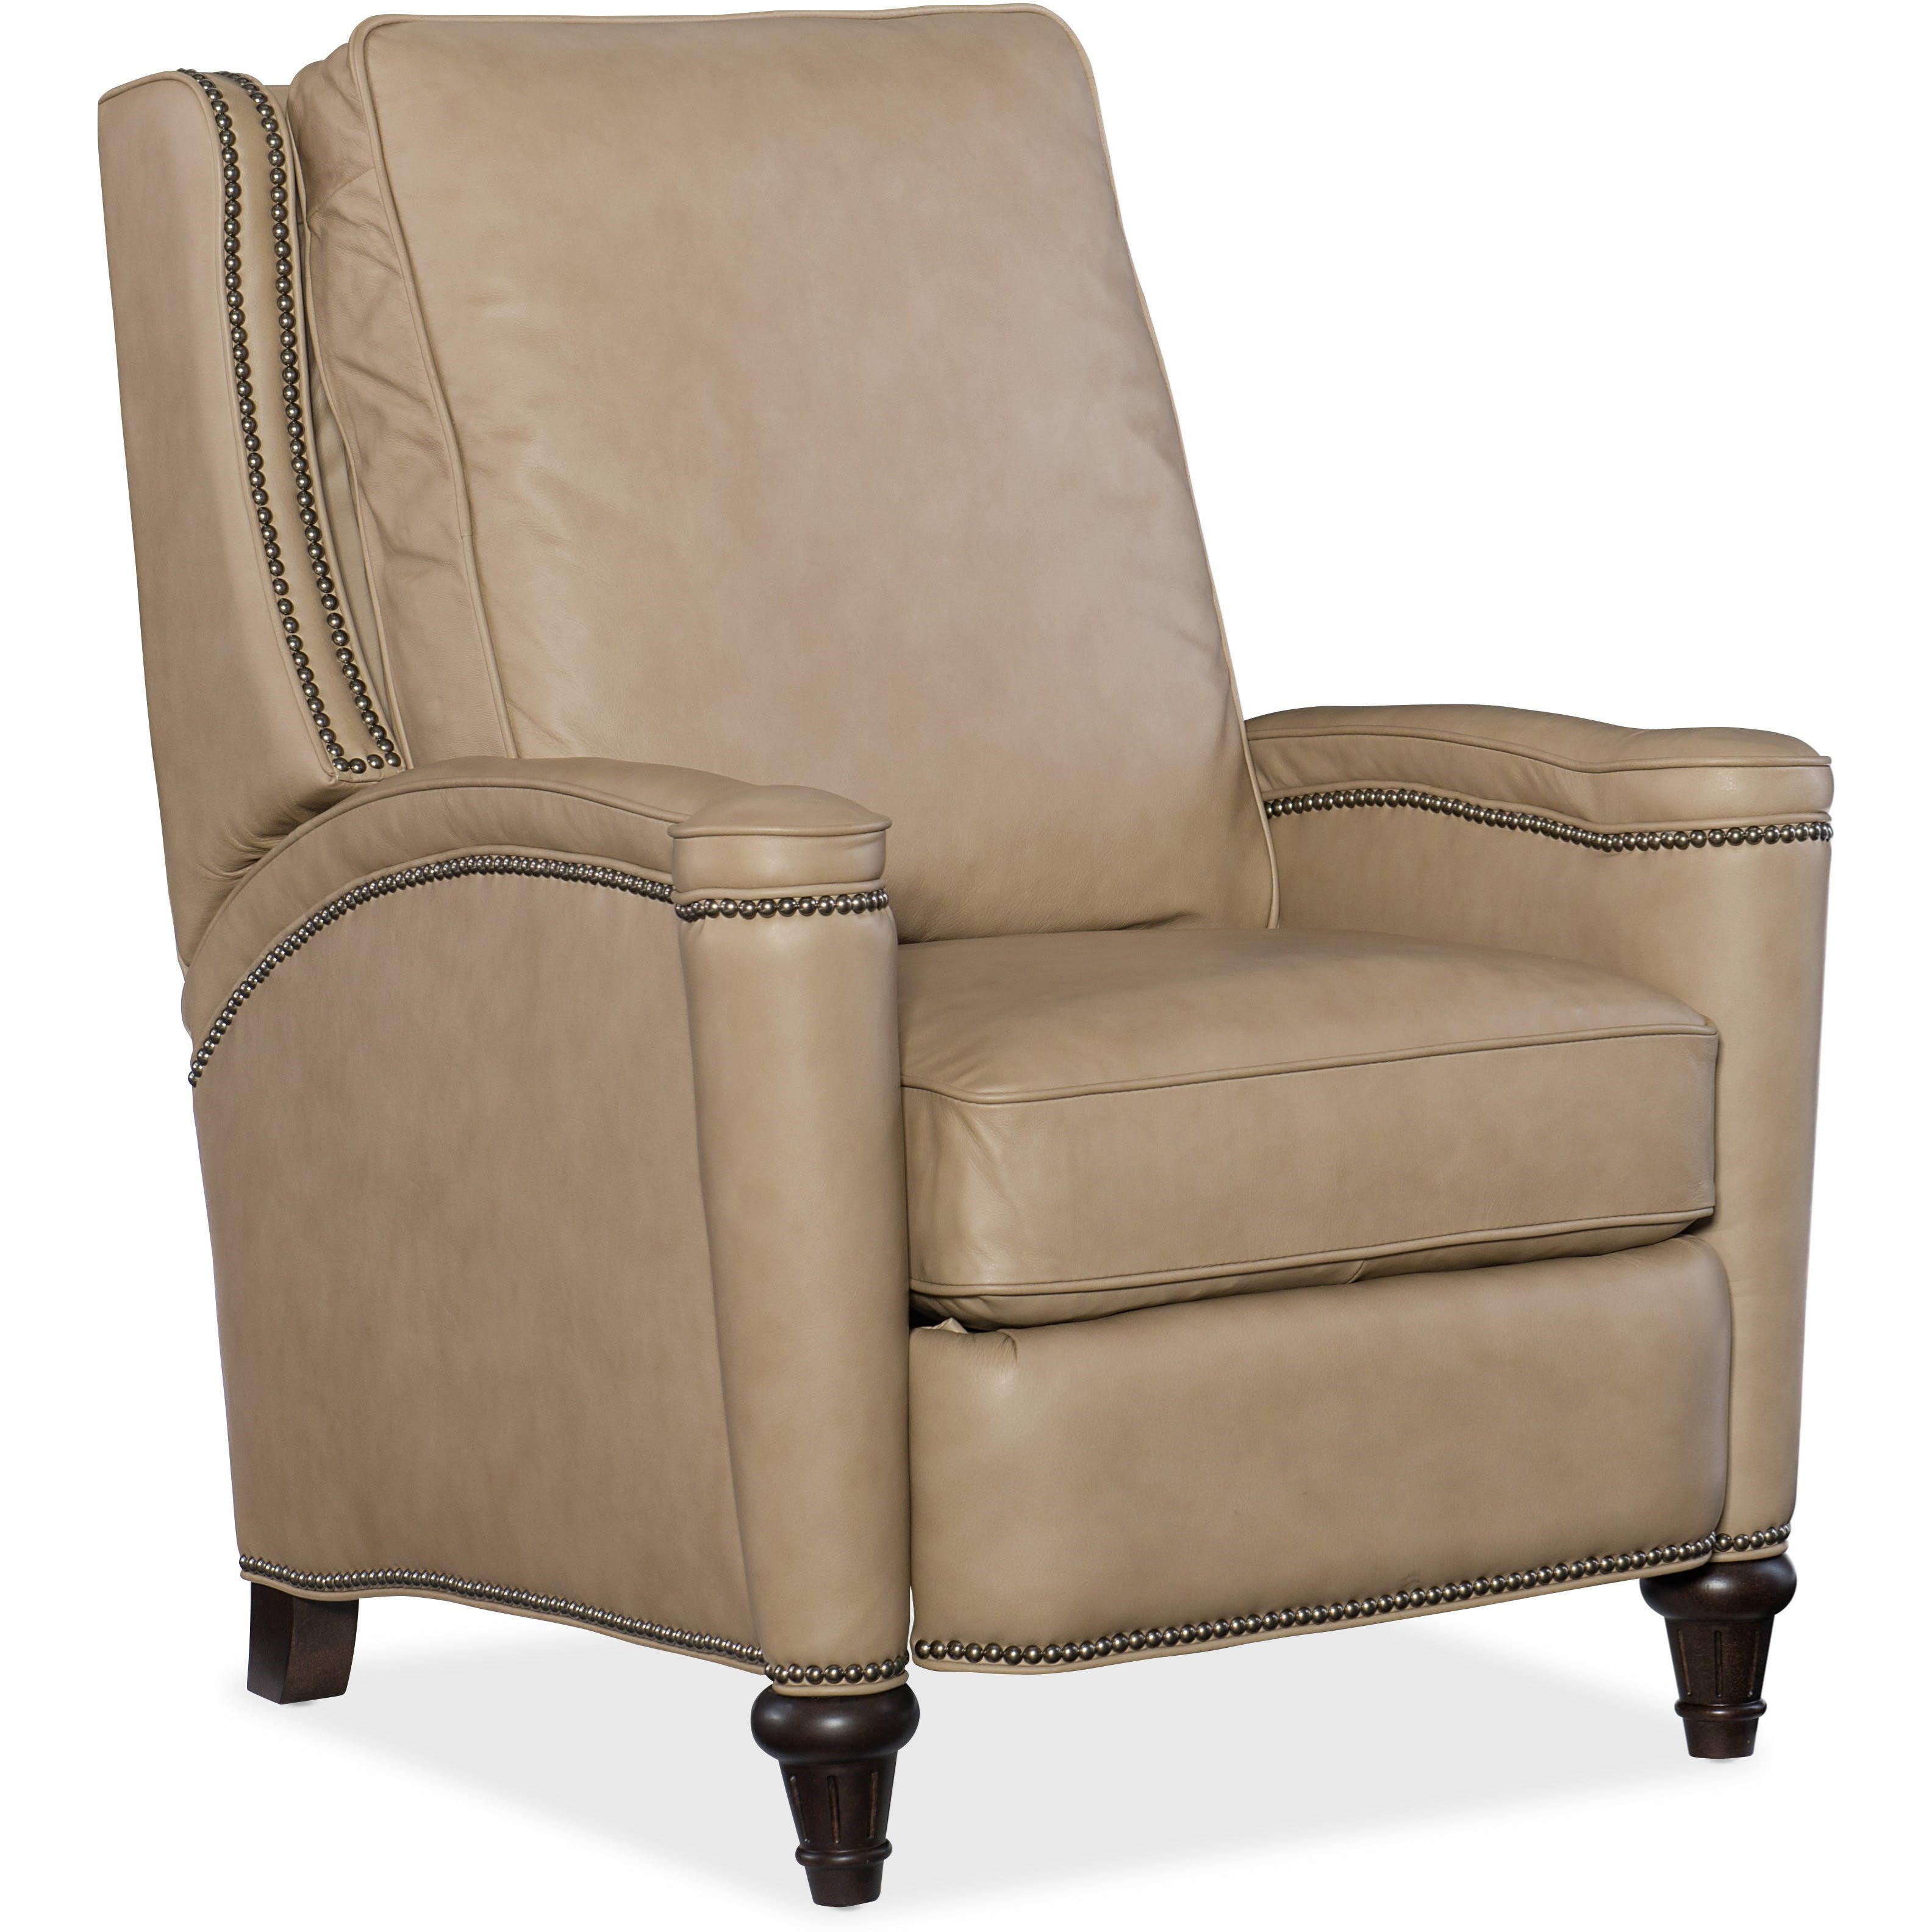 Reclining Chairs Rylea Recliner by Hooker Furniture at Miller Waldrop Furniture and Decor